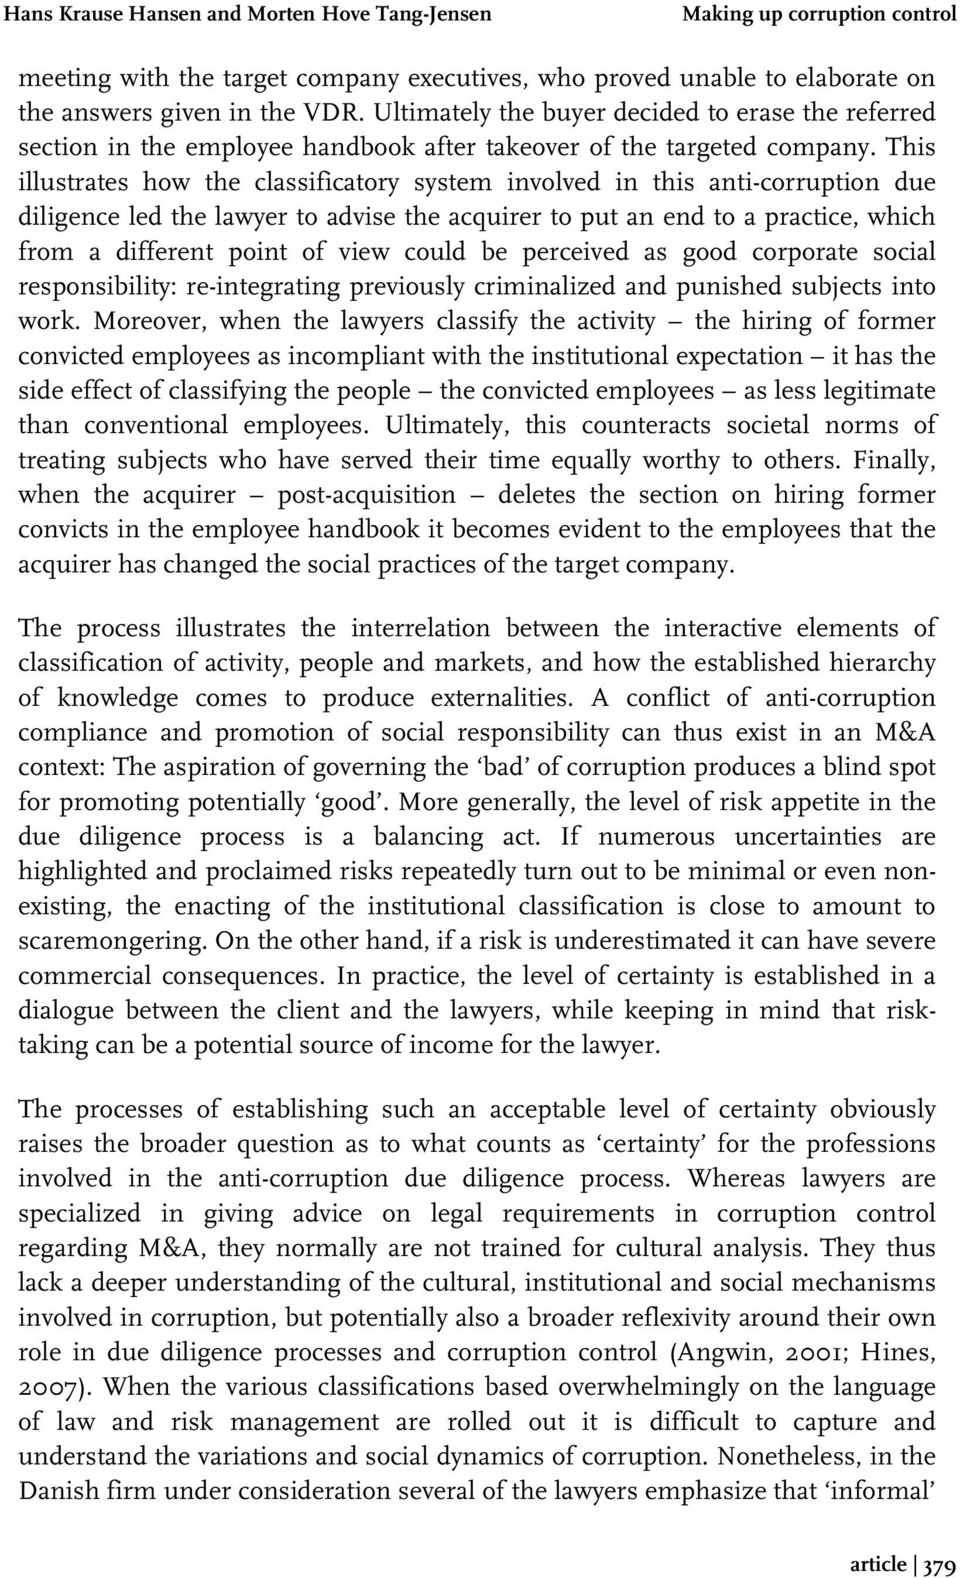 This illustrates how the classificatory system involved in this anti-corruption due diligence led the lawyer to advise the acquirer to put an end to a practice, which from a different point of view